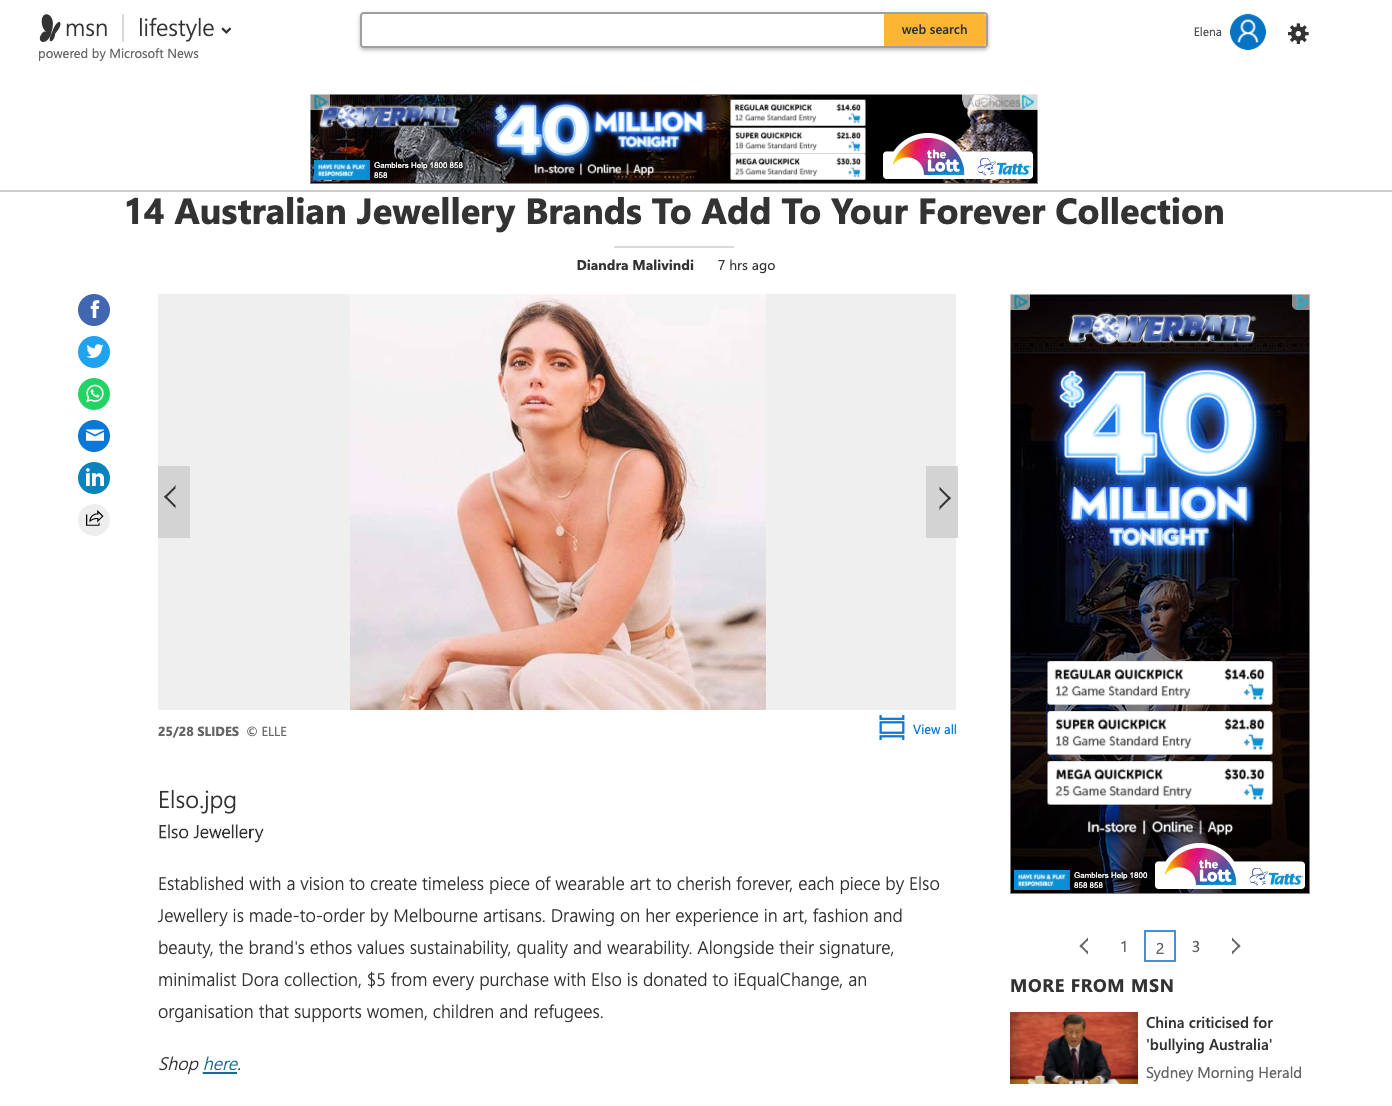 14 Australian Jewellery Brands To Add To Your Forever Collection